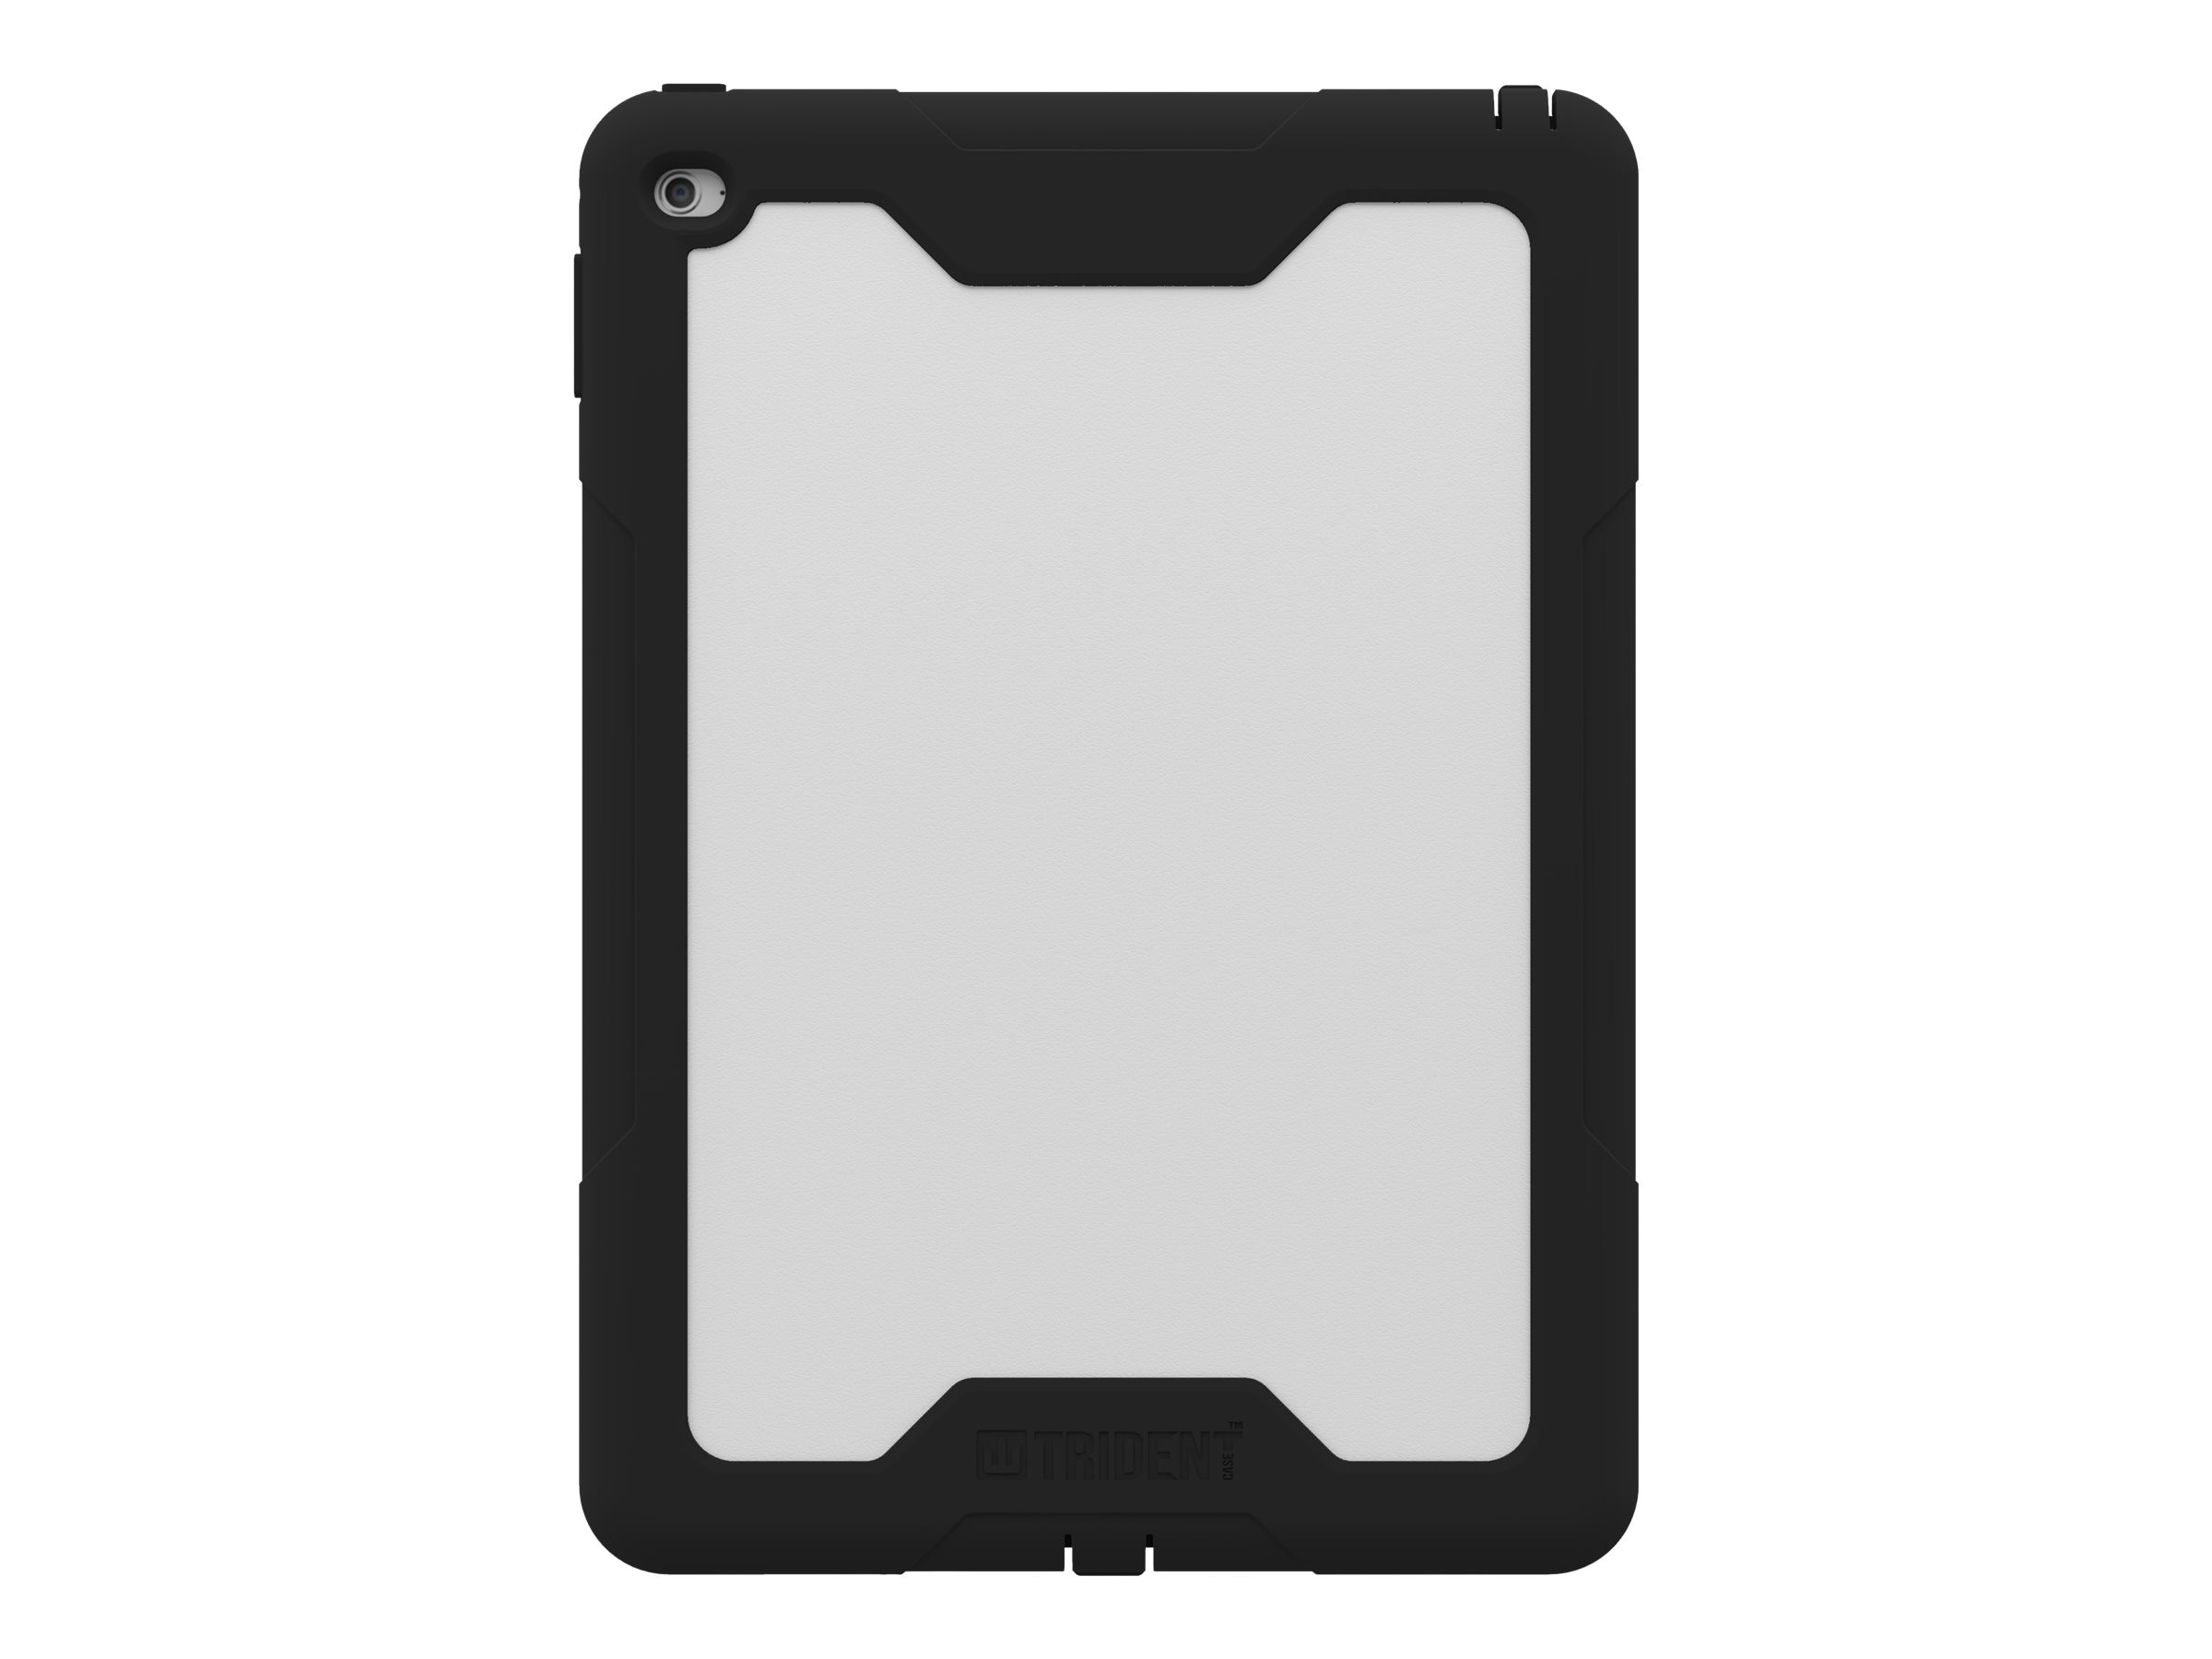 Trident Case 2015 Cyclops Case for iPad Air 2, White, CY-APIPA2-WT000